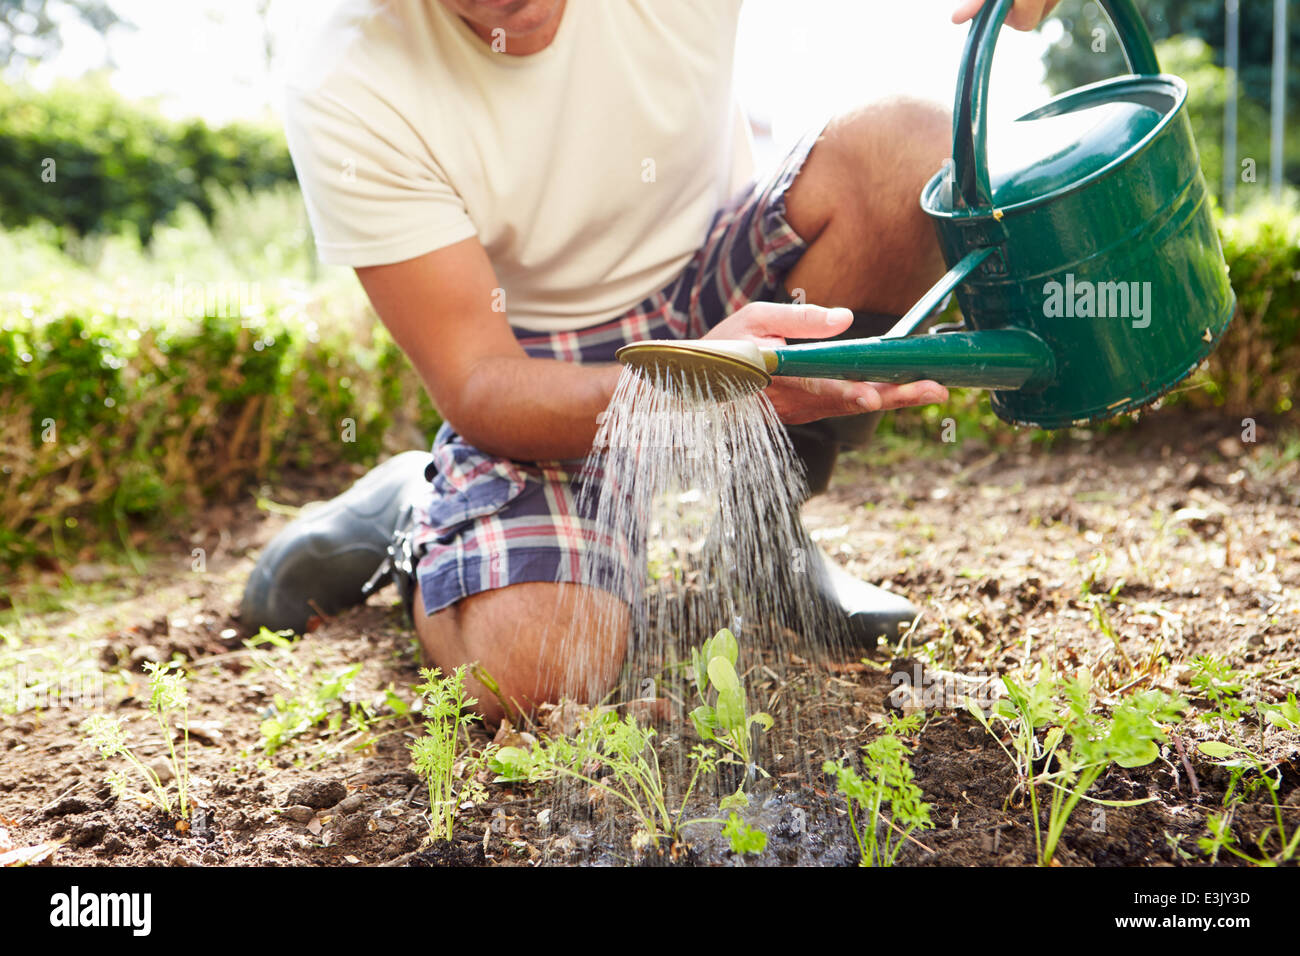 Close Up Of Man Watering Seedlings In Ground On Allotment - Stock Image